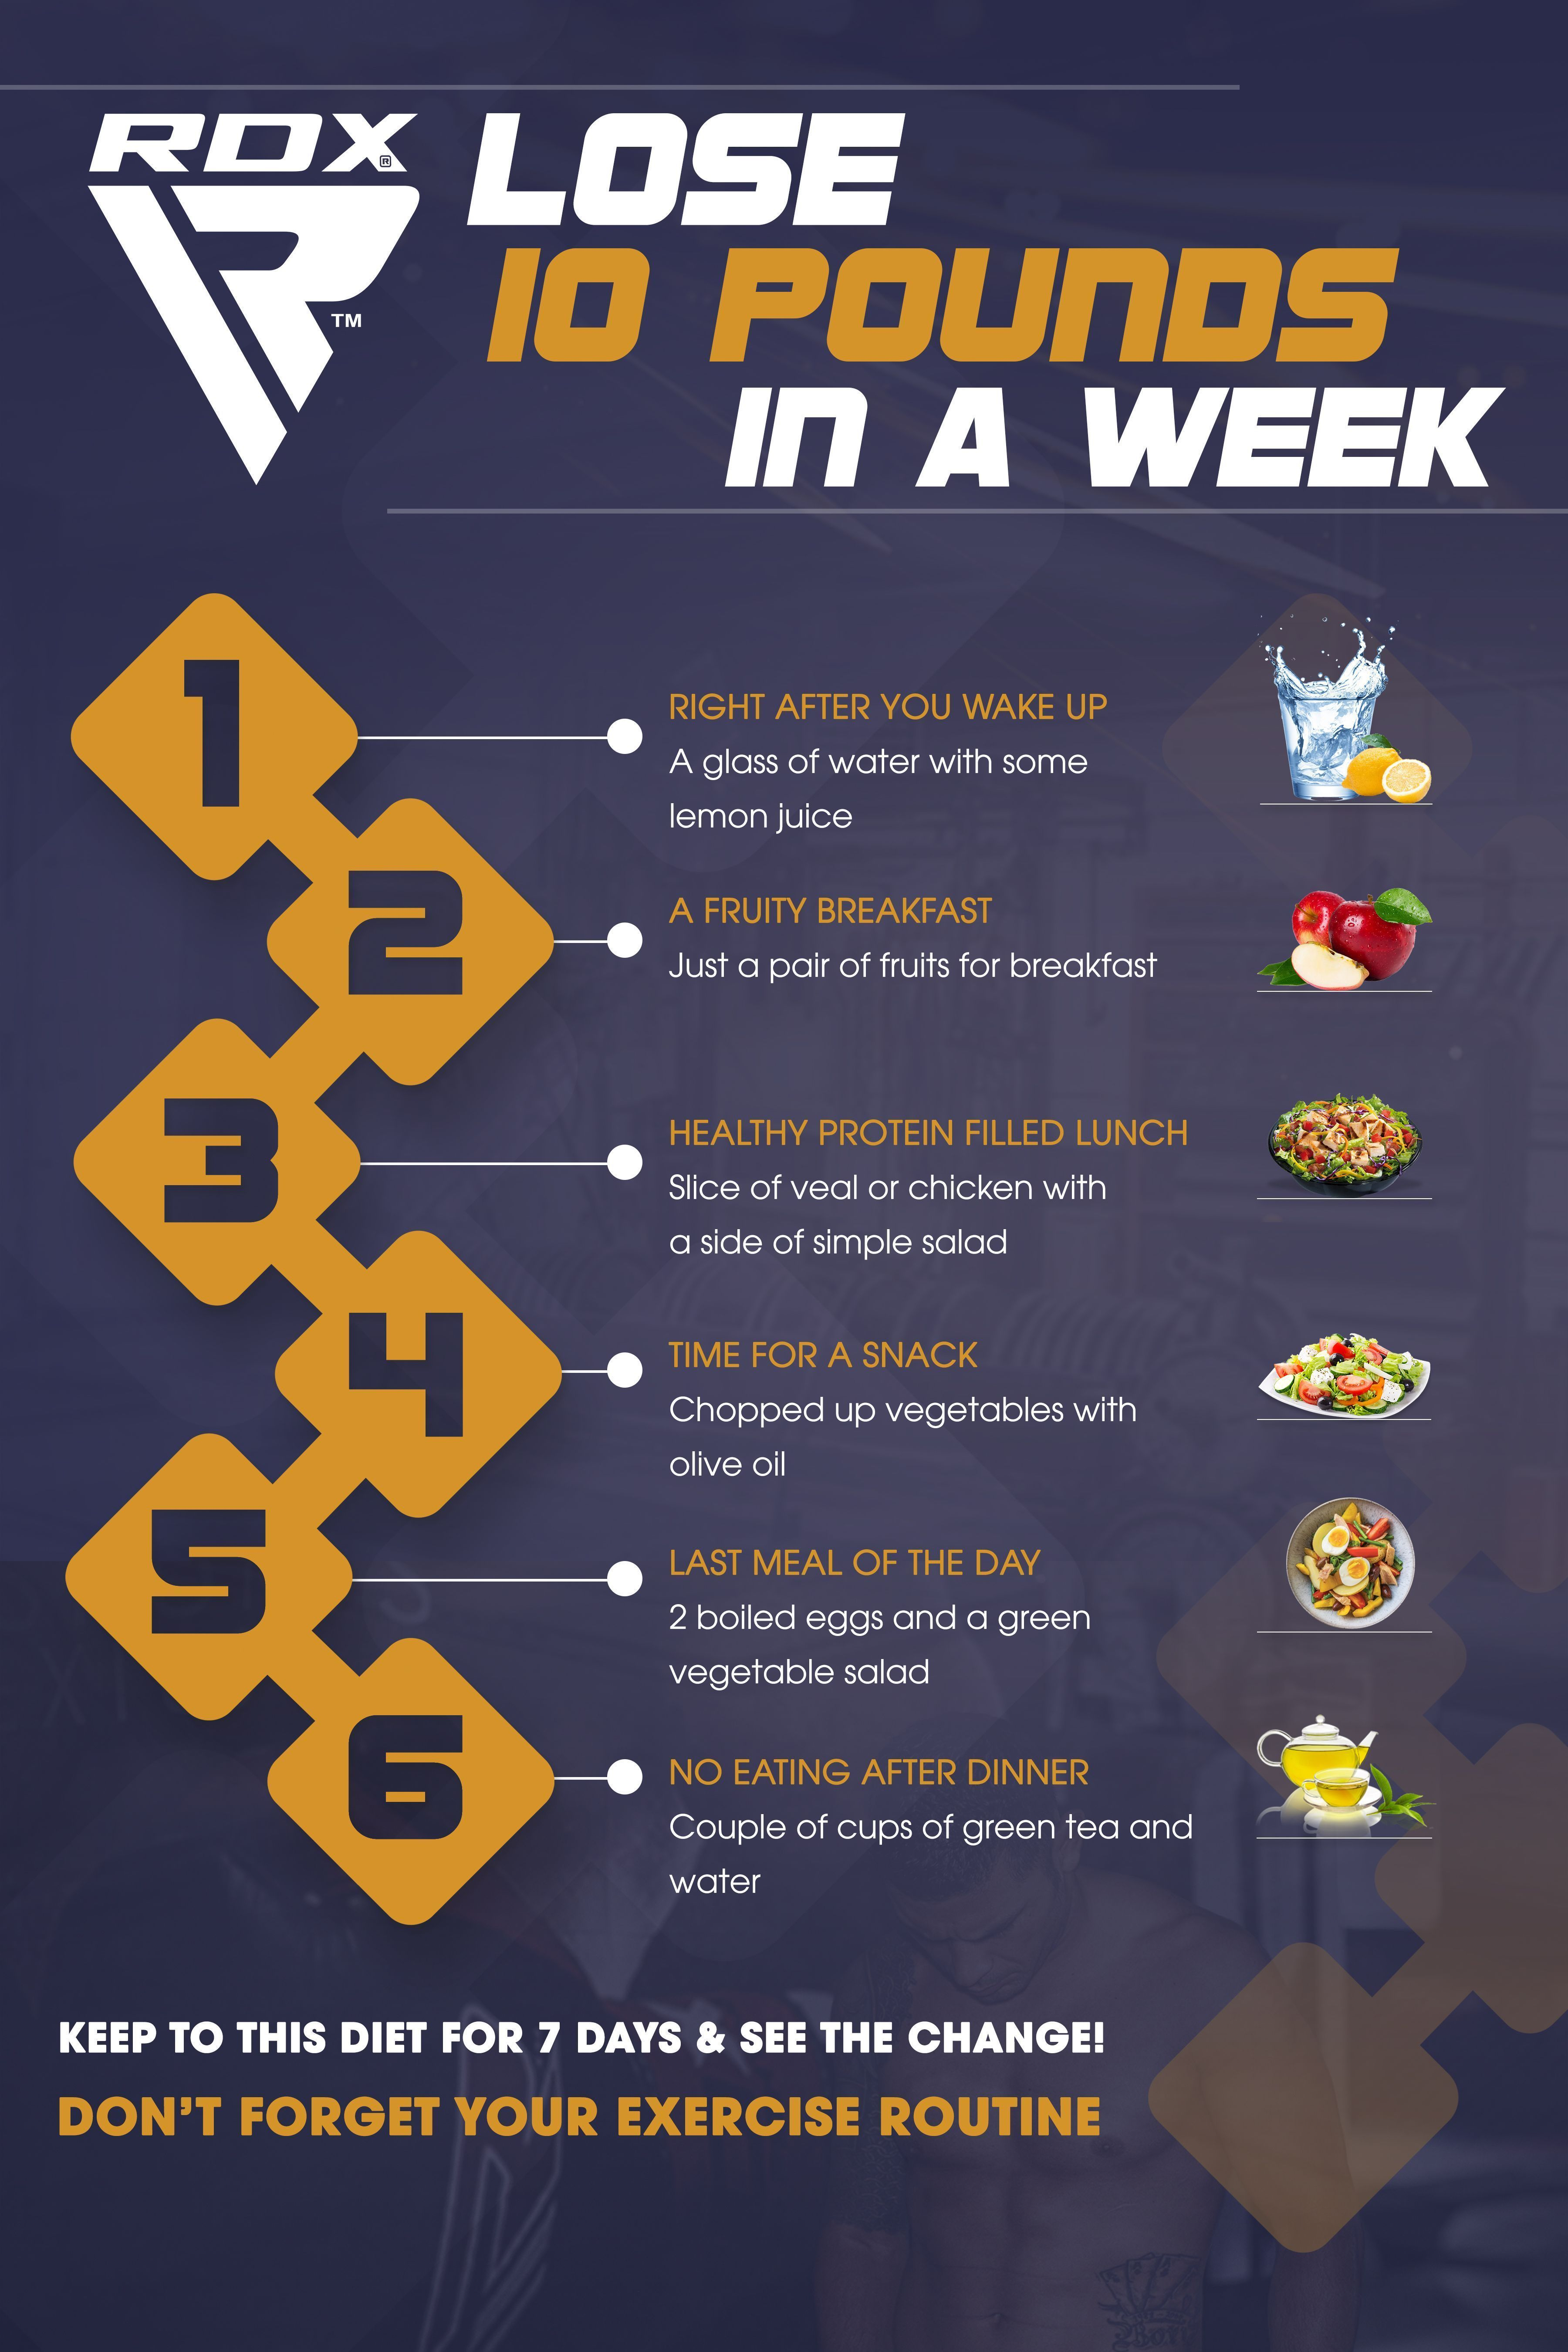 Home made tips for fast weight loss #rapidweightloss <= | how ro lose weight#weightlossjourney #fitn...